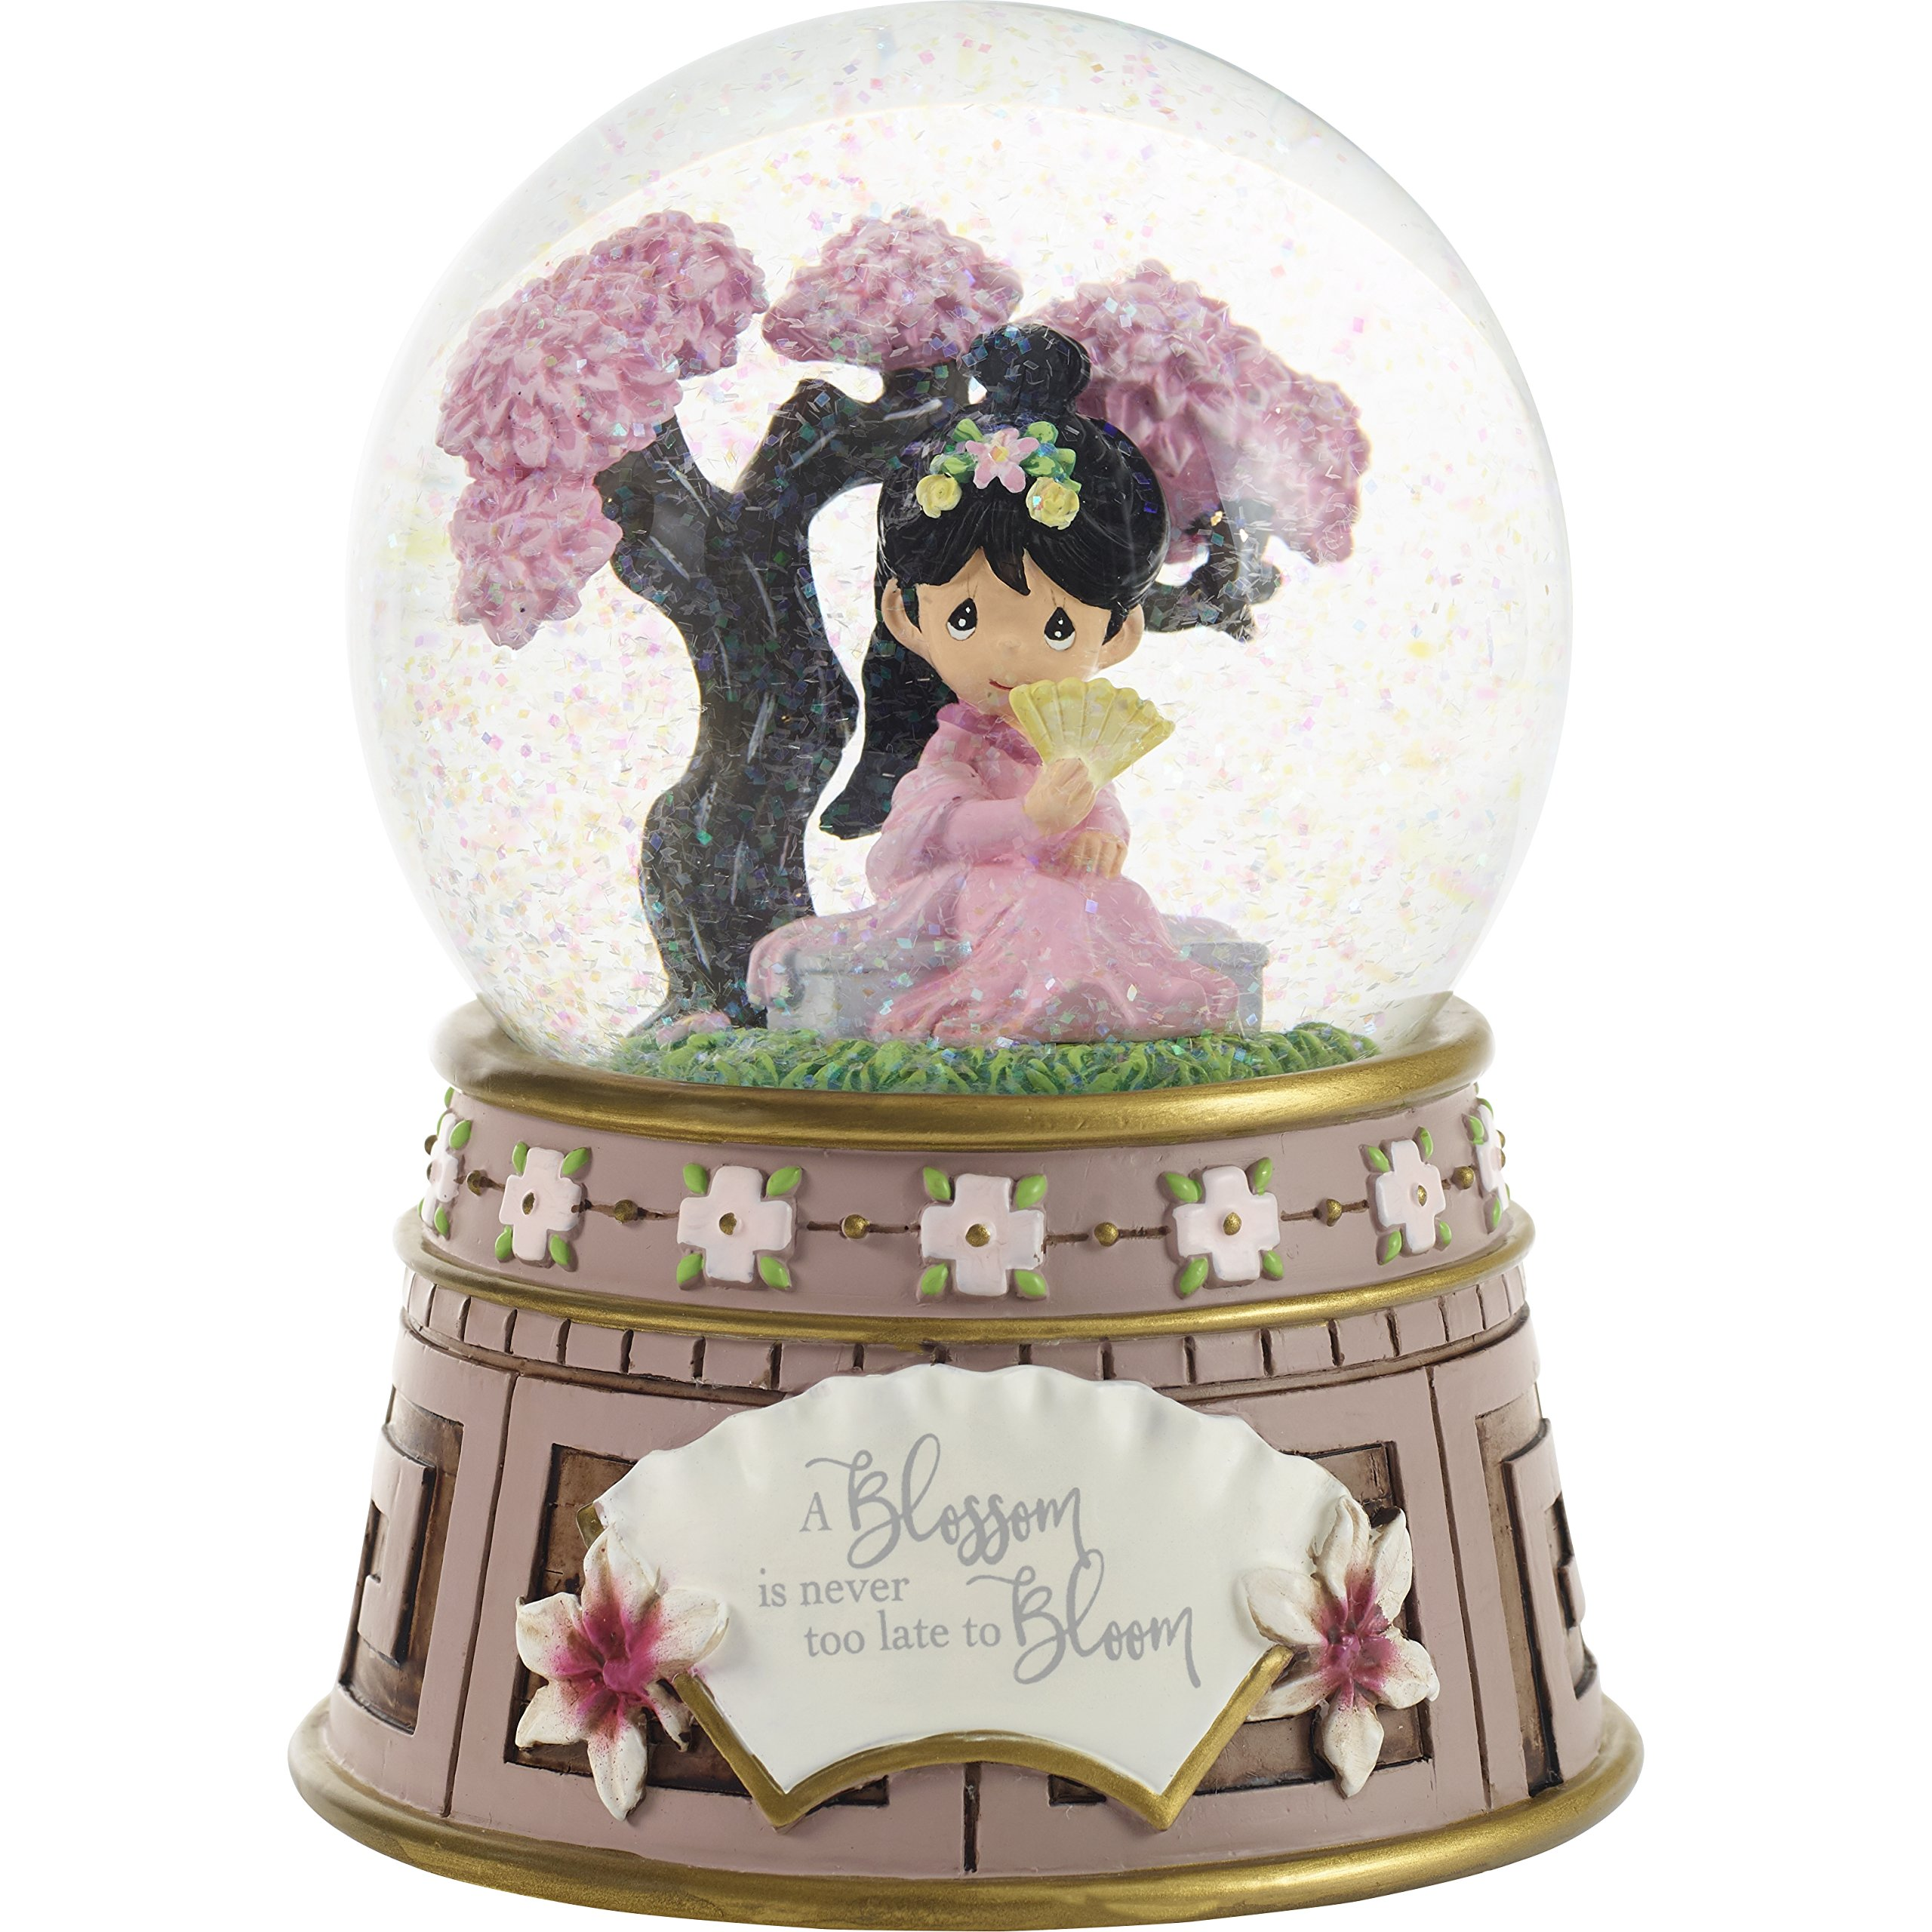 Precious Moments Company Disney Showcase Mulan A Blossom is Never Too Late to Bloom Resin Glass Show Globe 181101 Musical Waterball, One Size, Multi by Precious Moments